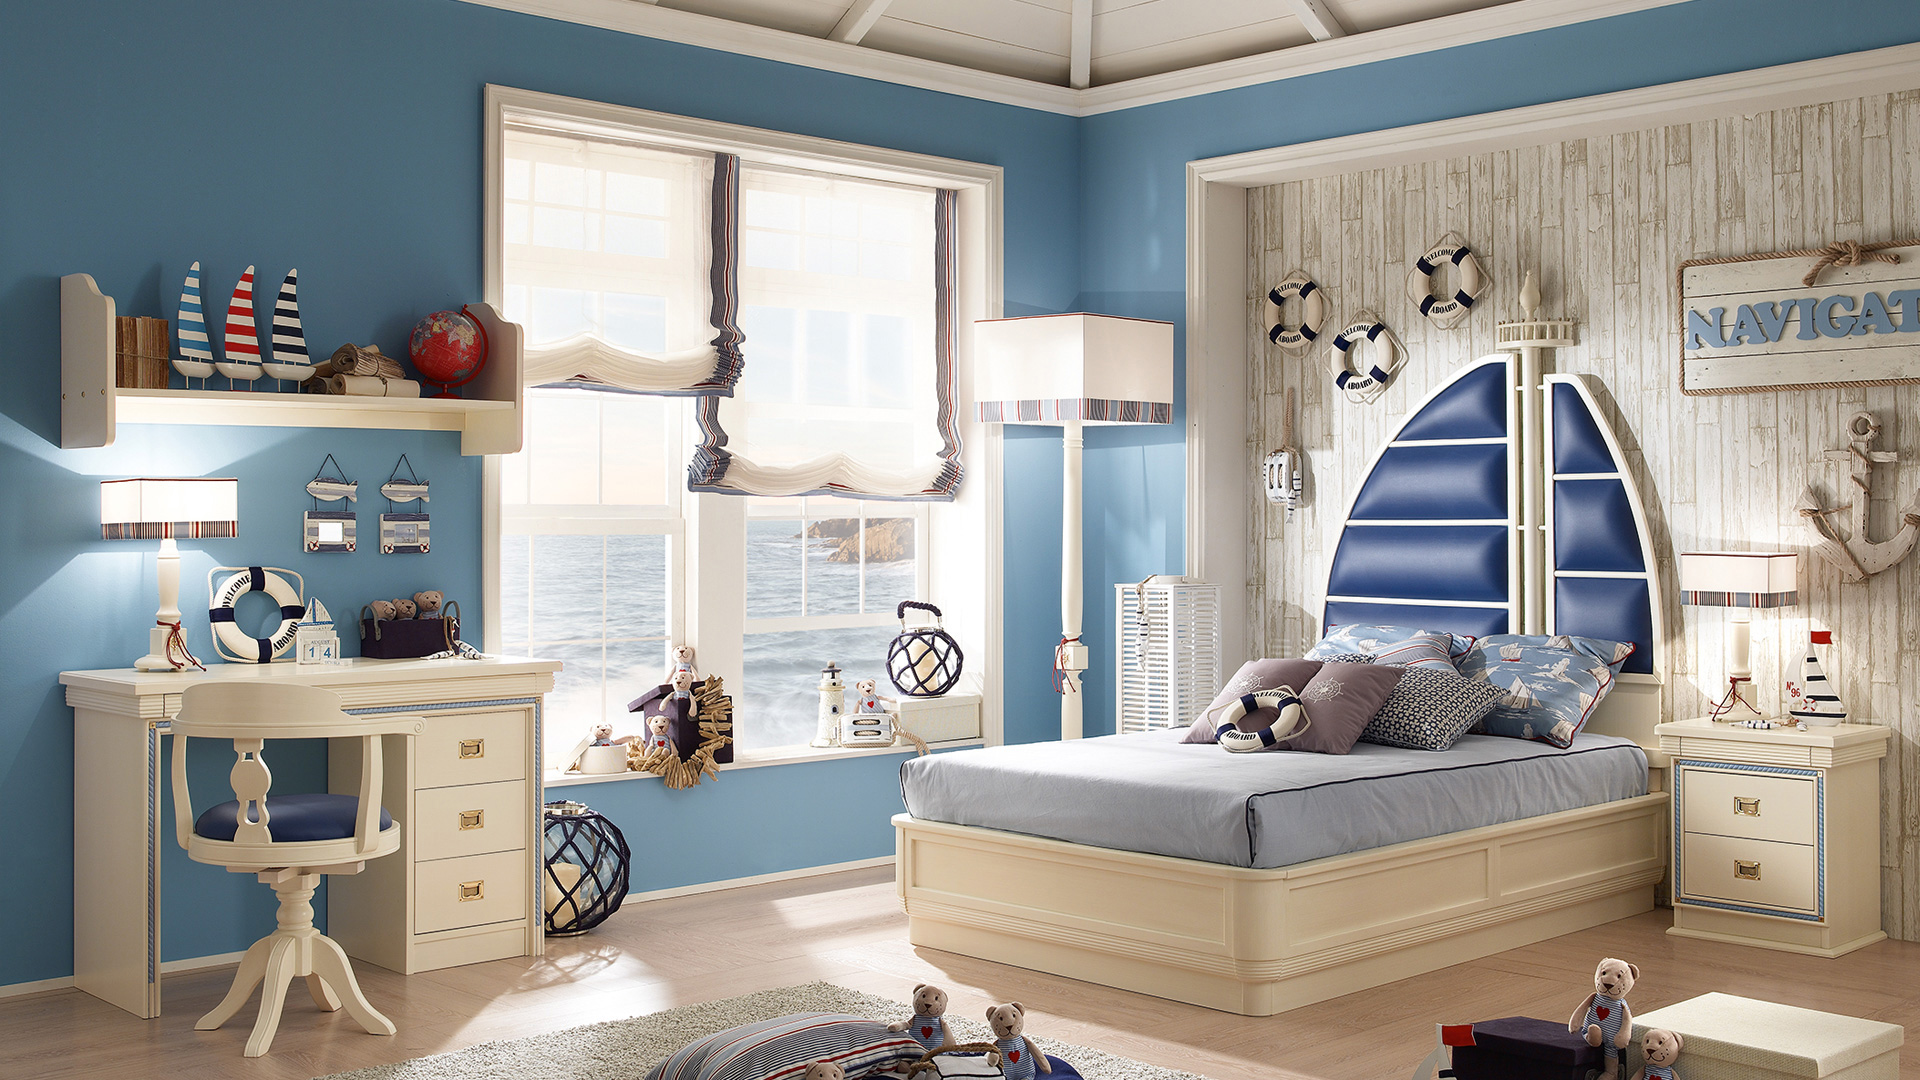 Navy Style Bedroom Proposal 260 Caroti